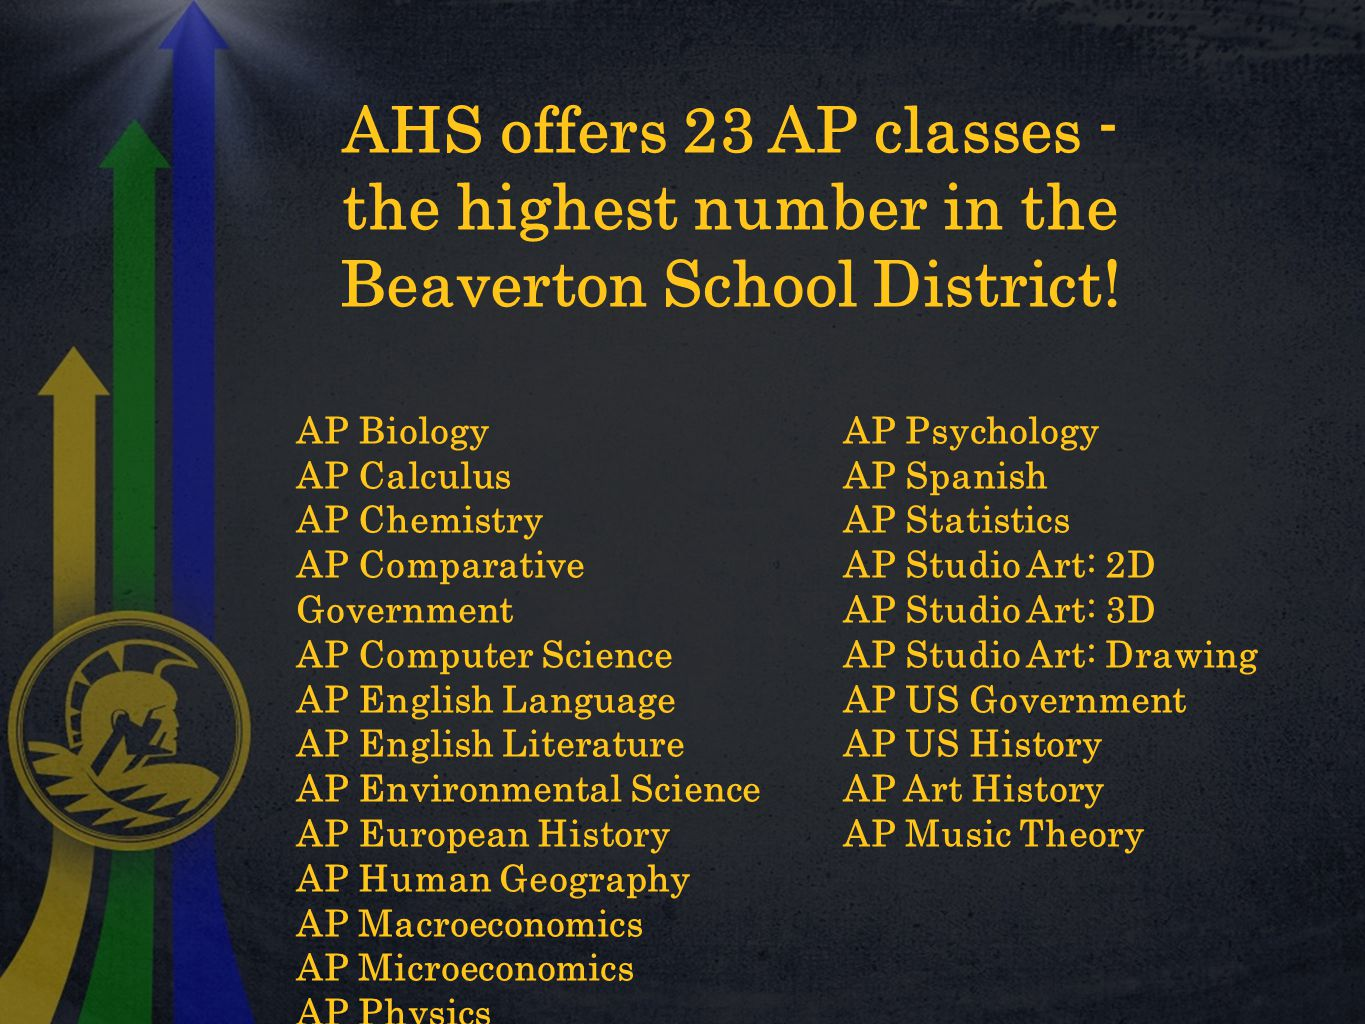 AHS offers 23 AP classes - the highest number in the Beaverton School District.